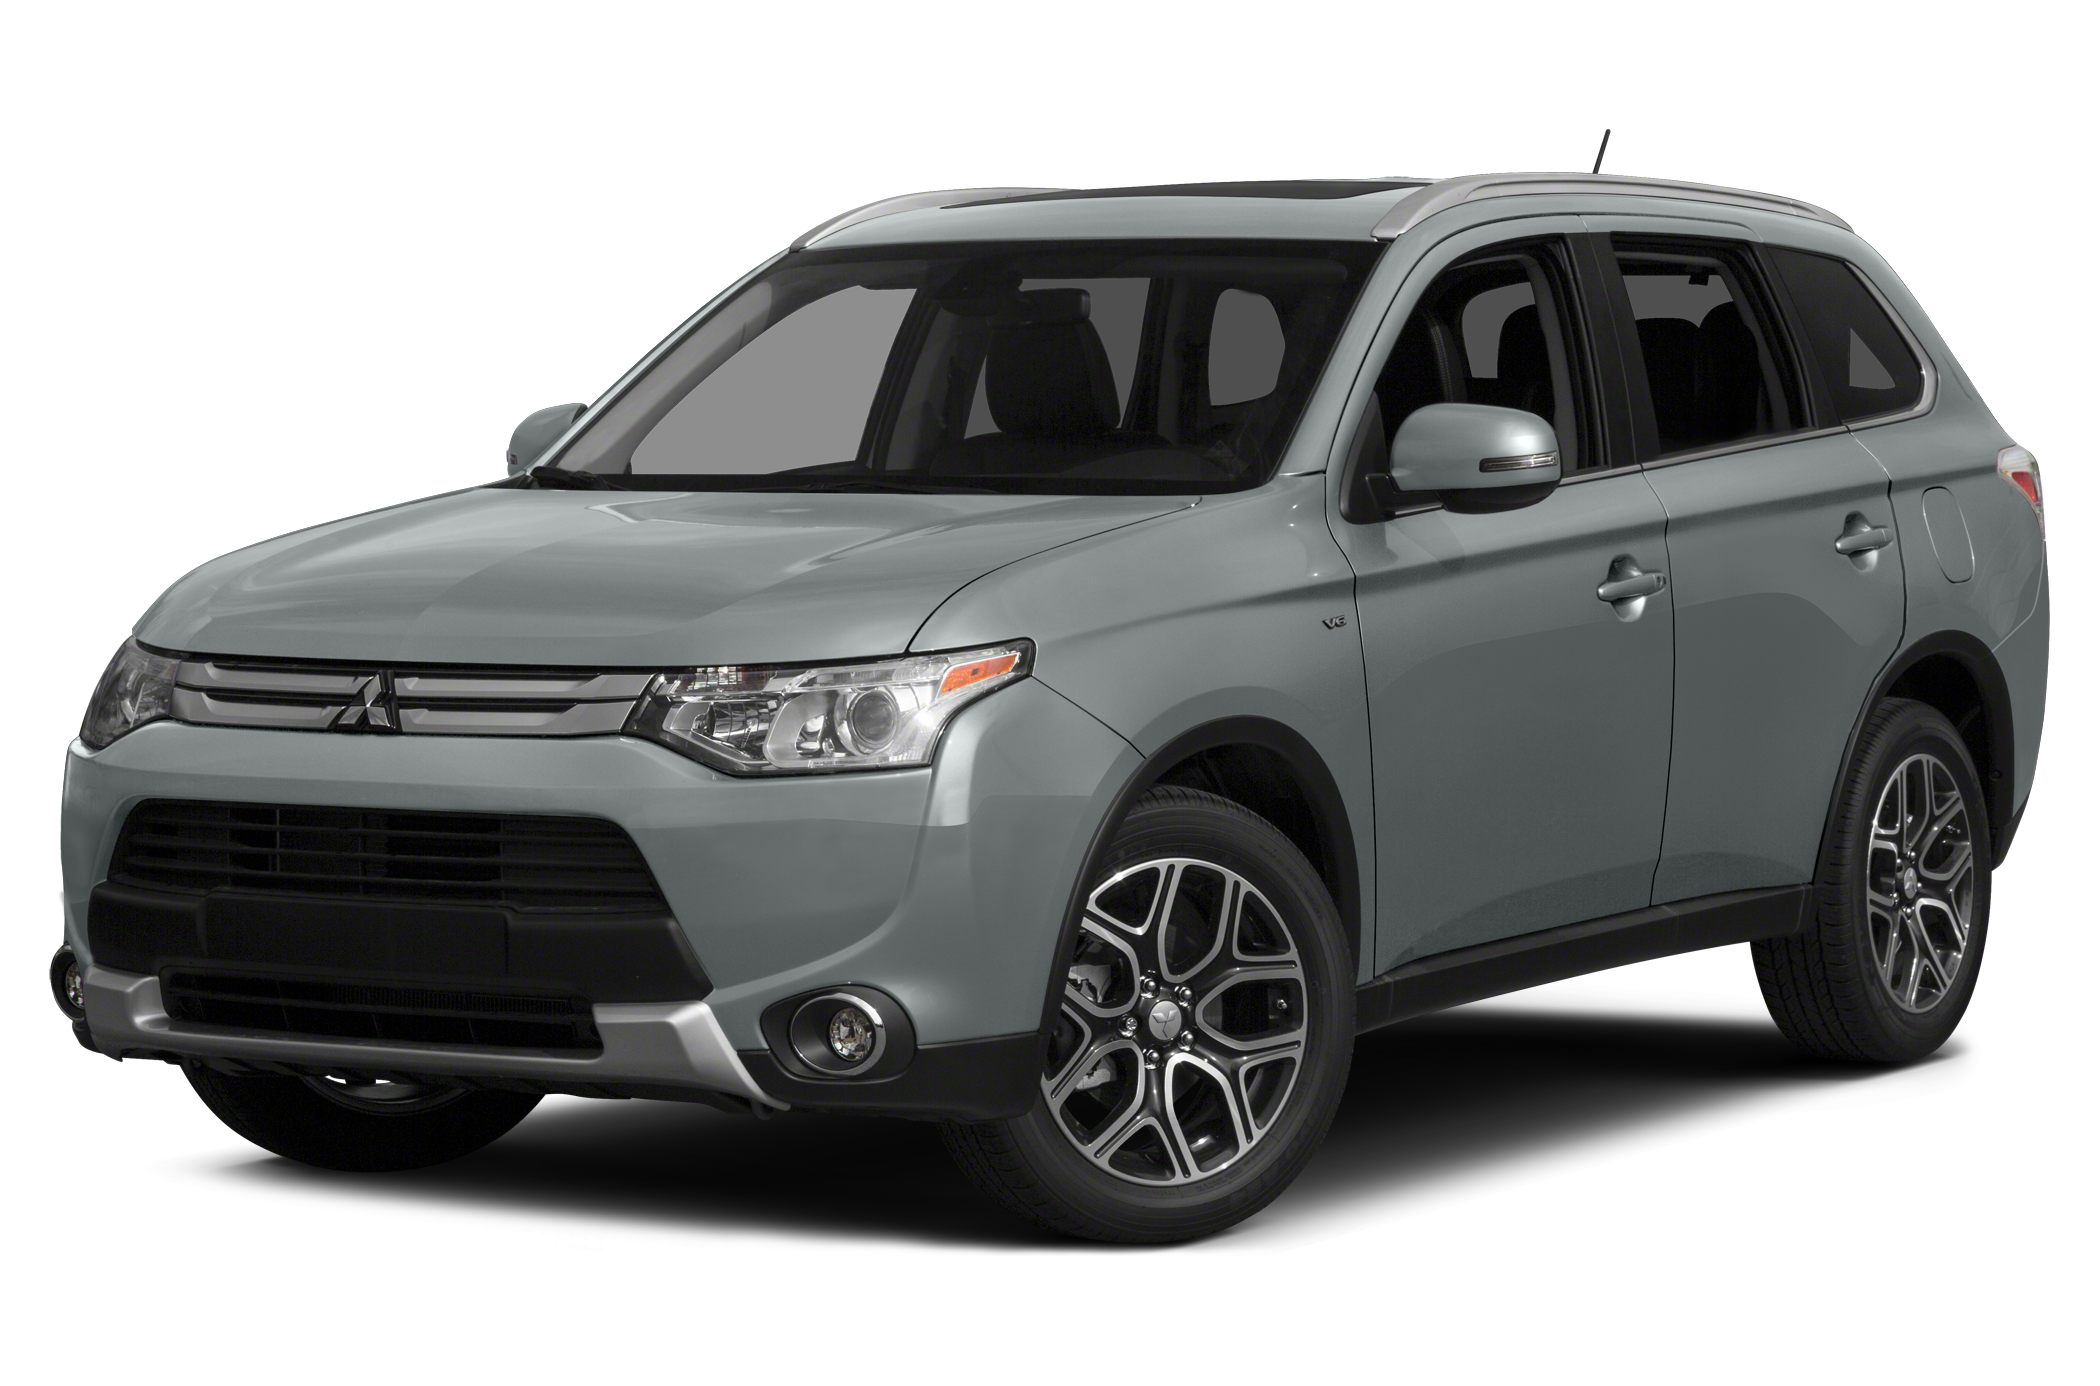 2015 Mitsubishi Outlander SE THIS VEHICLE COMES WITH OUR BEST PRICE GUARANTEE FIND A BETTER ON A